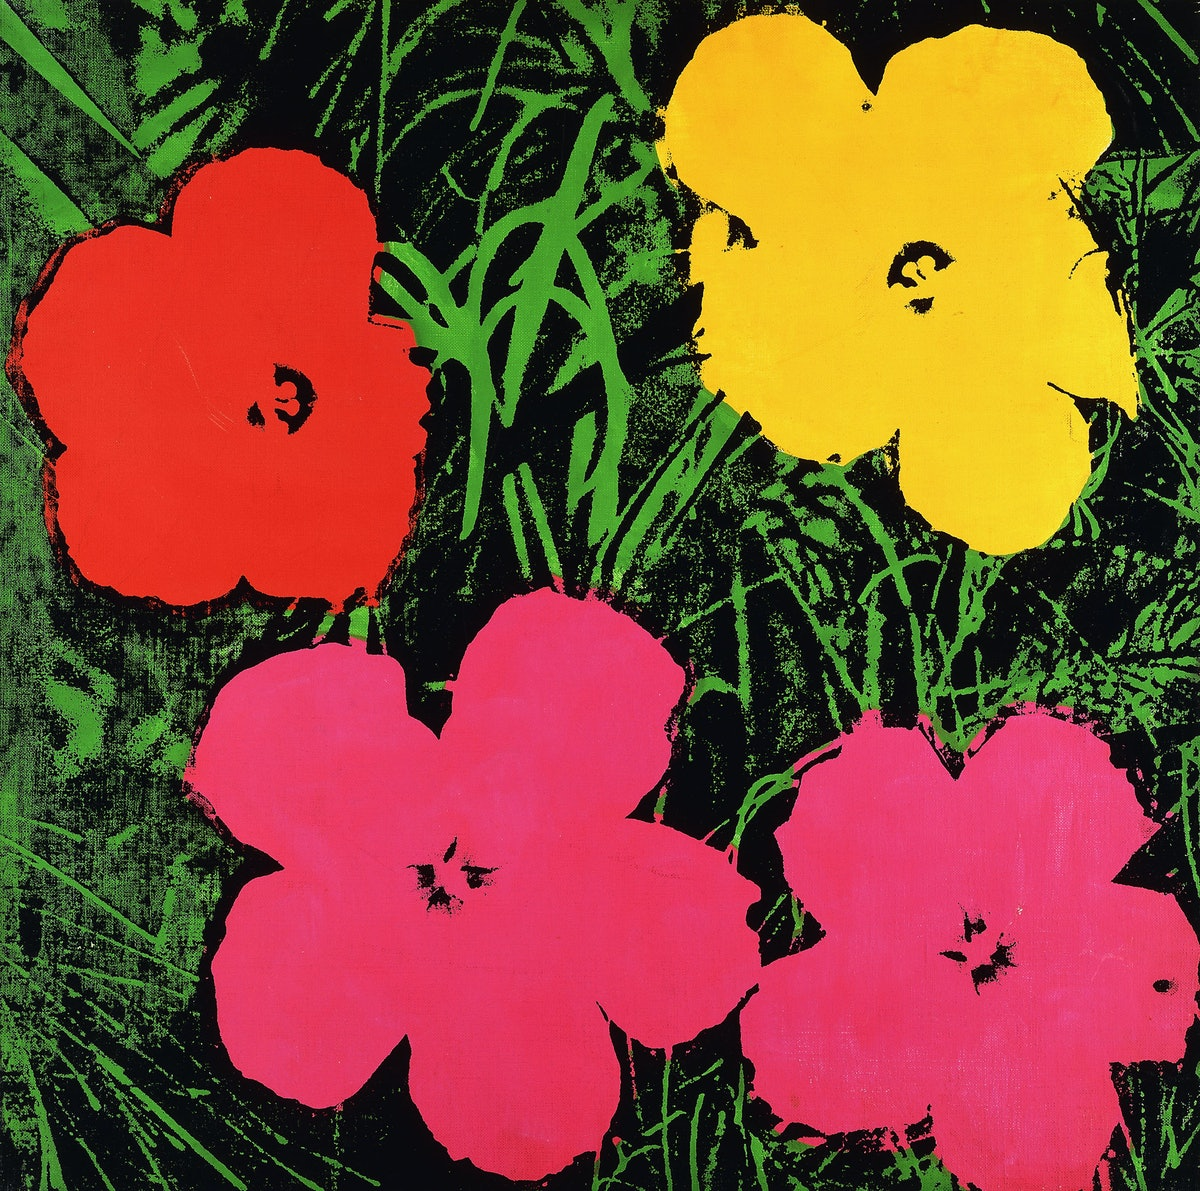 Warhol's *Flowers*, 1970, which inspired the new prints.